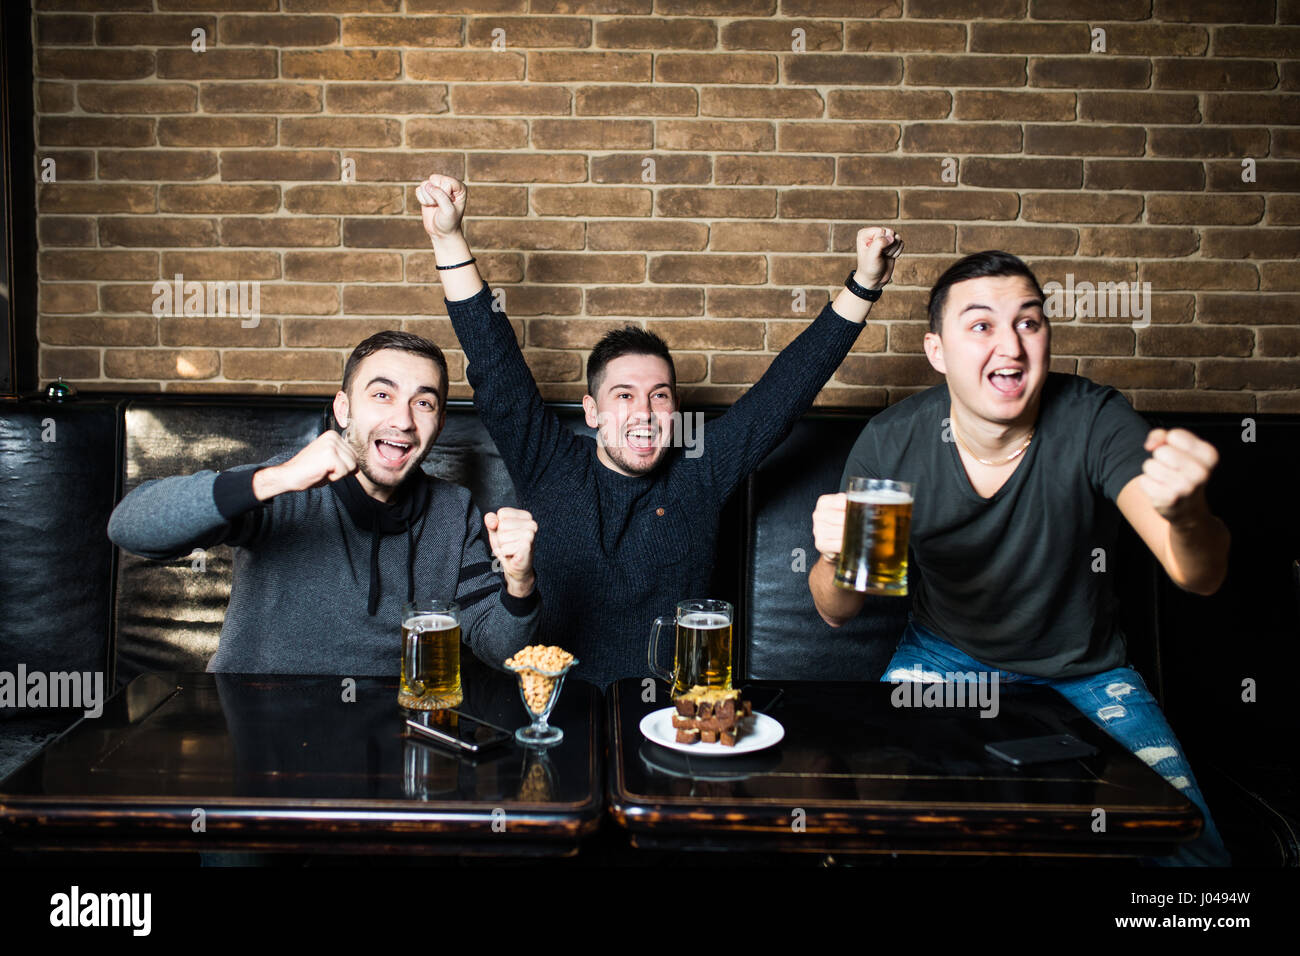 Young men drink beer, eat snaks and cheering for football. - Stock Image